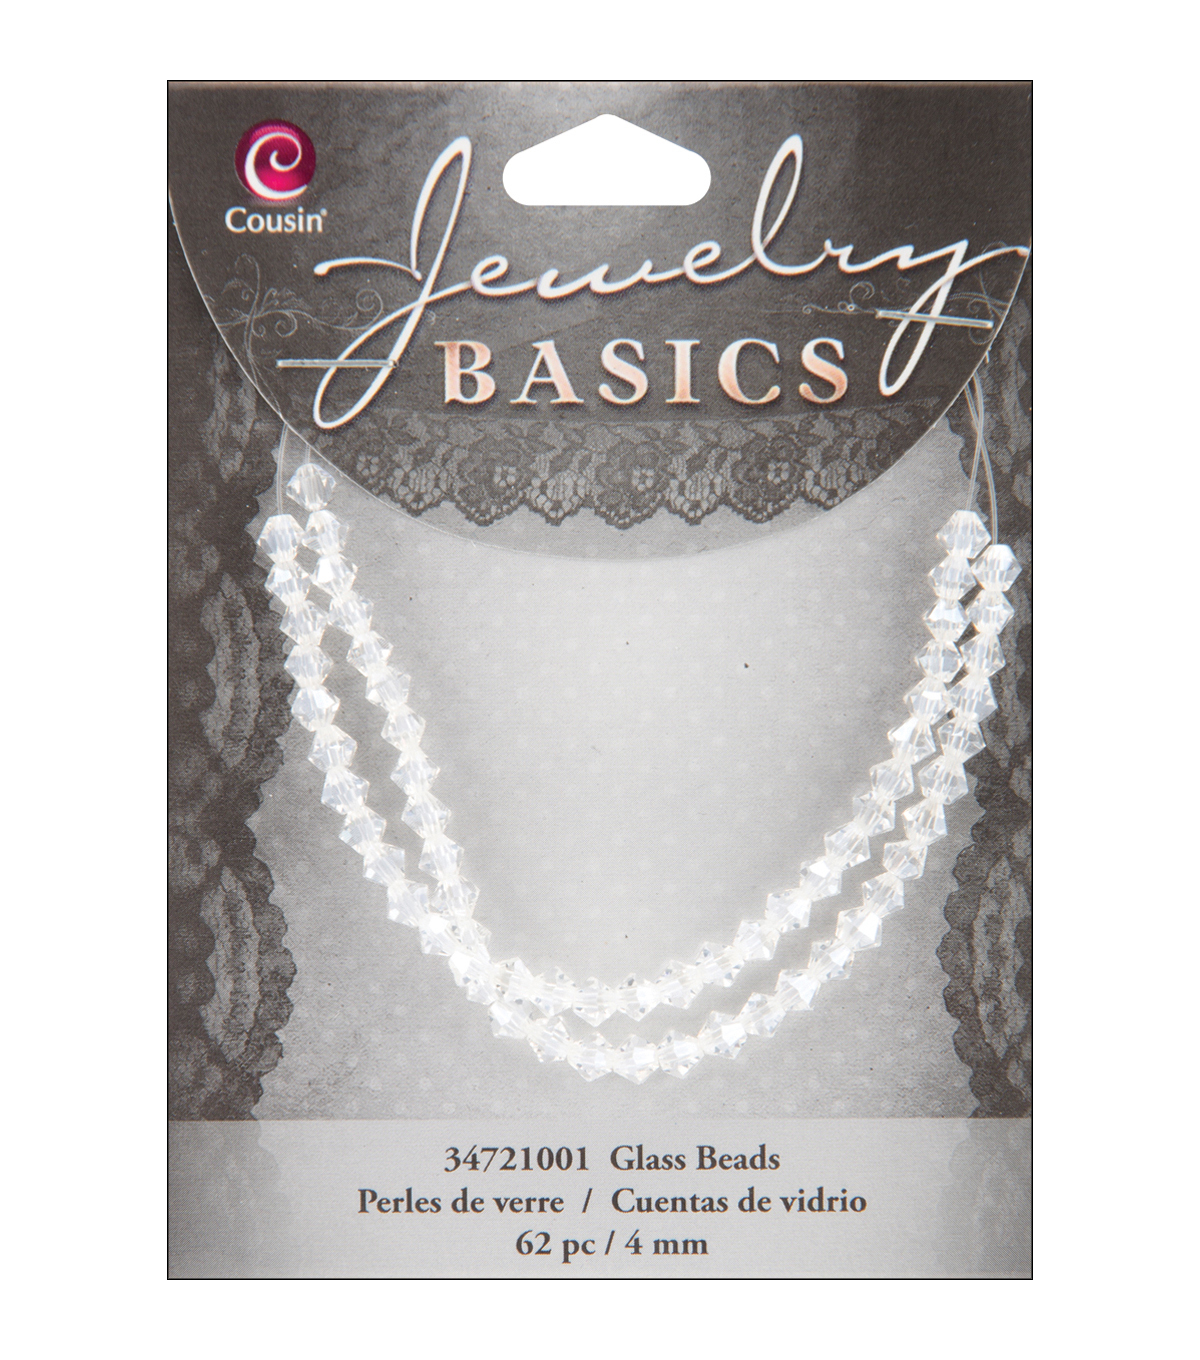 Jewelry Basics Crystal Bicone Beads 4mm 62/Pkg-Crystal